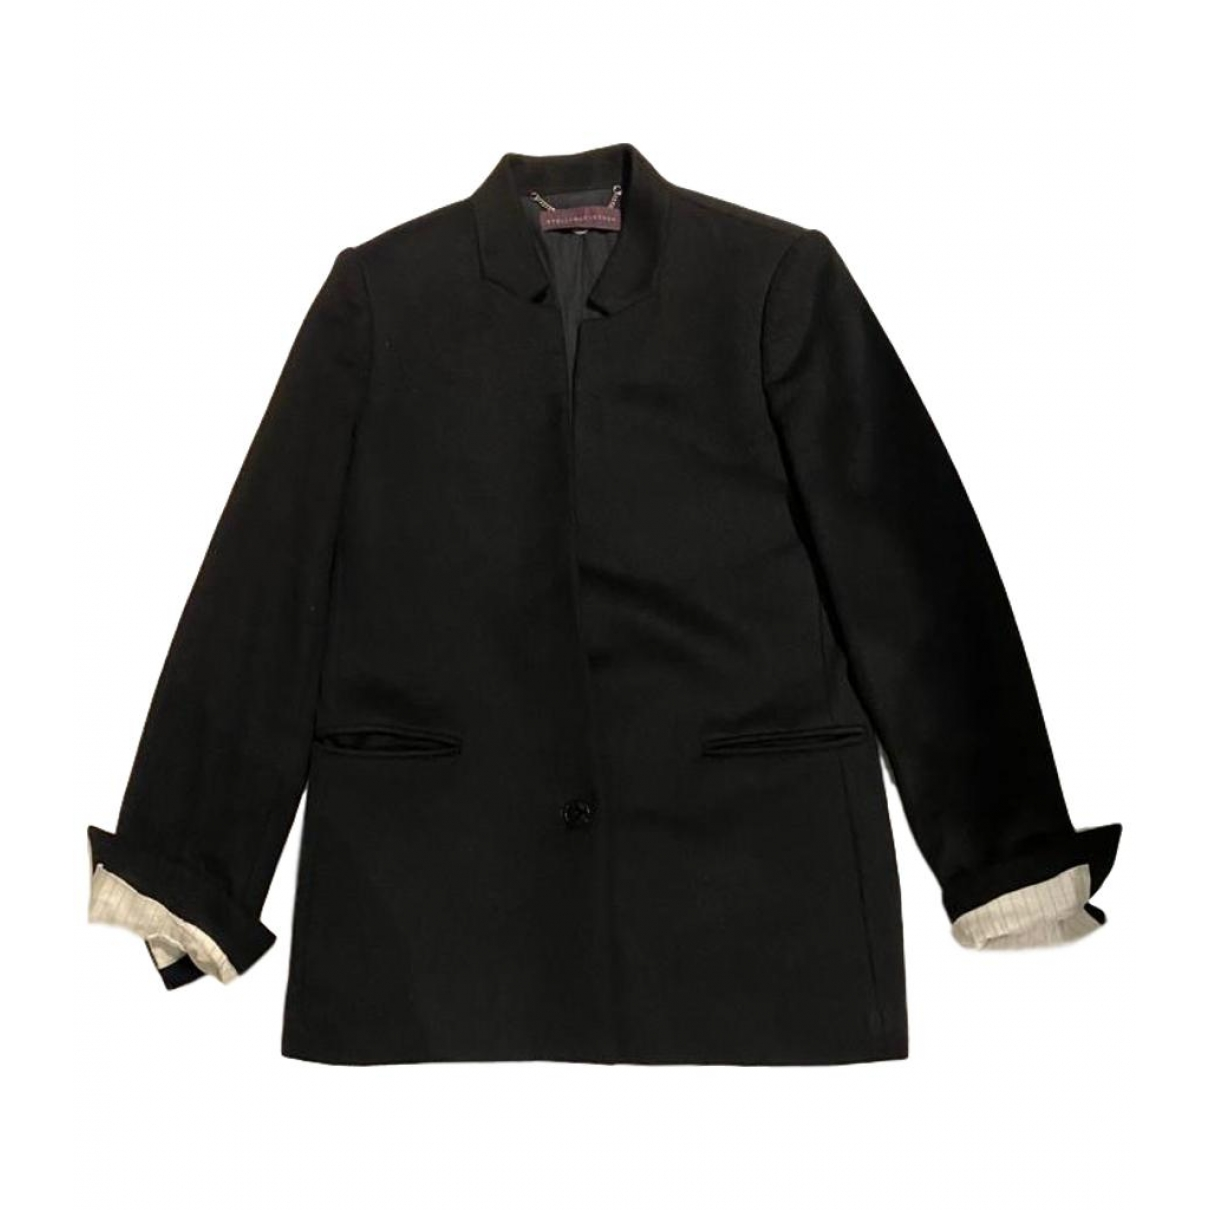 Stella Mccartney \N Black Cashmere jacket for Women 42 IT